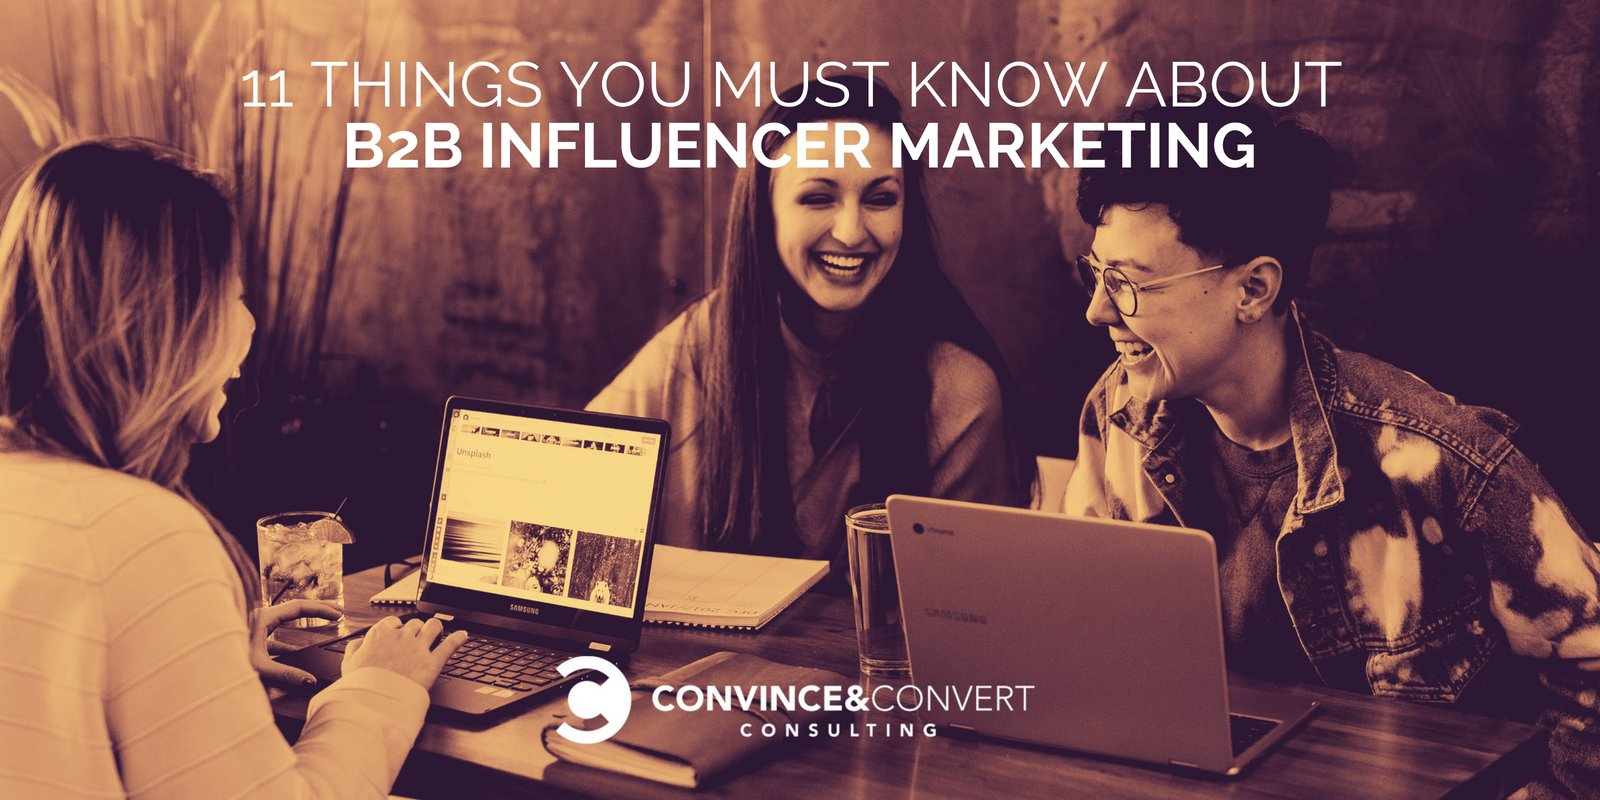 11 Things You Must Know About B2B Influencer Marketing